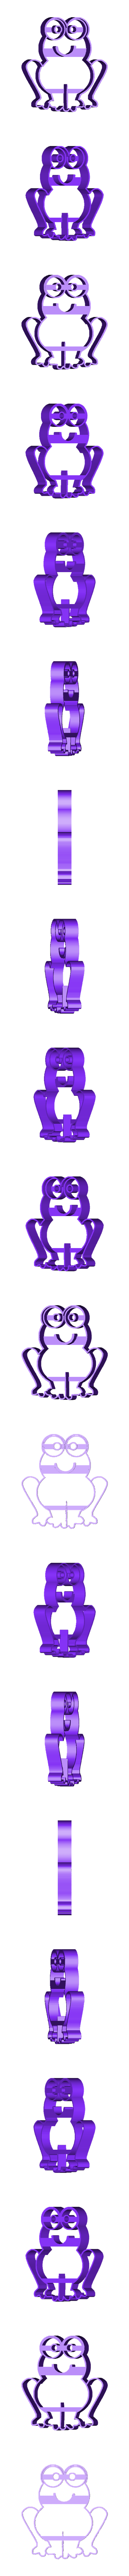 frog.stl Download free STL file Frog cookie cutter • Object to 3D print, andih256